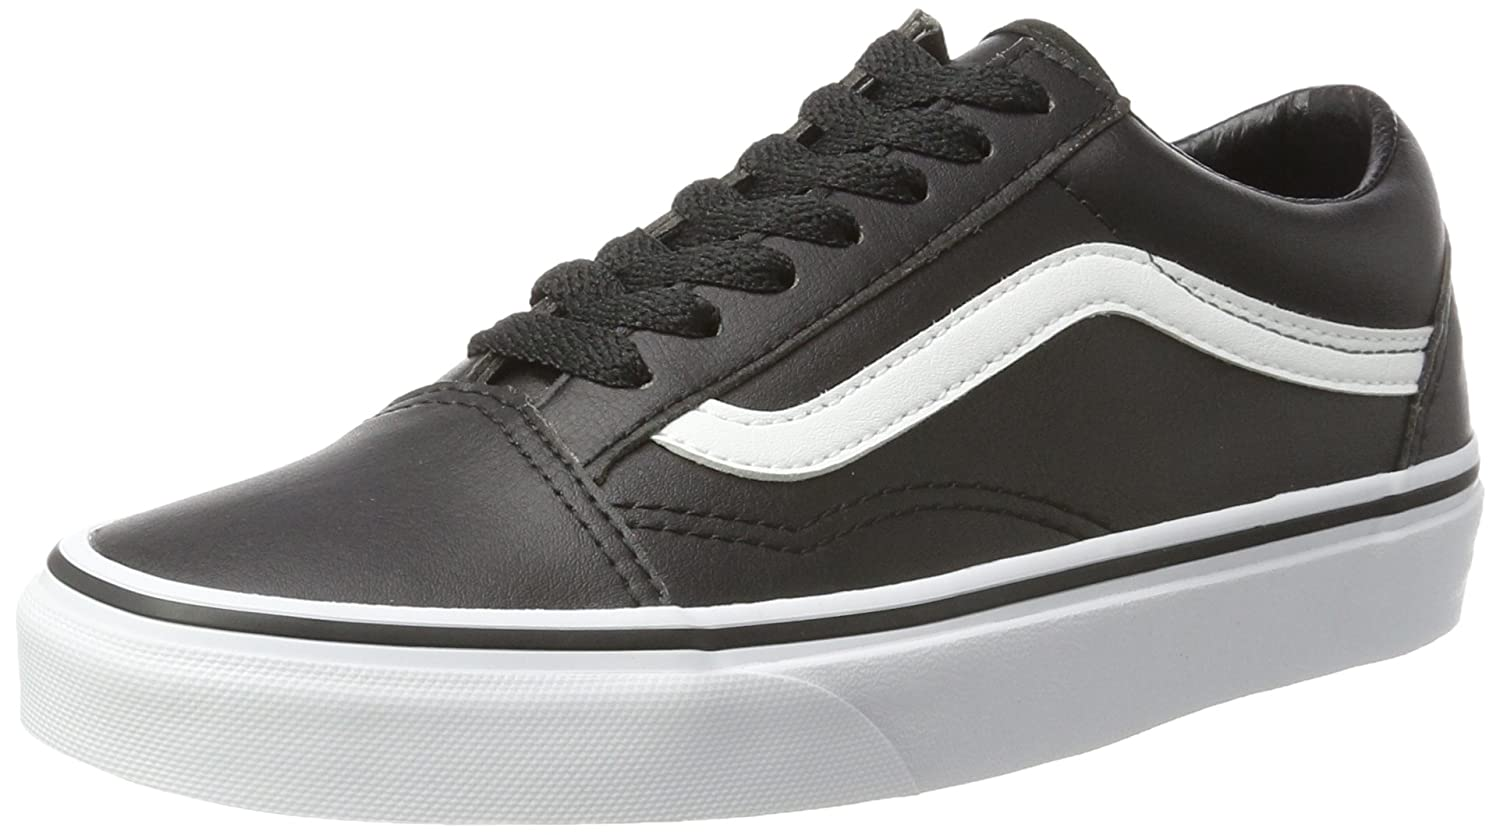 TALLA 35 EU. Vans Old Skool Leather, Zapatillas Unisex Adulto